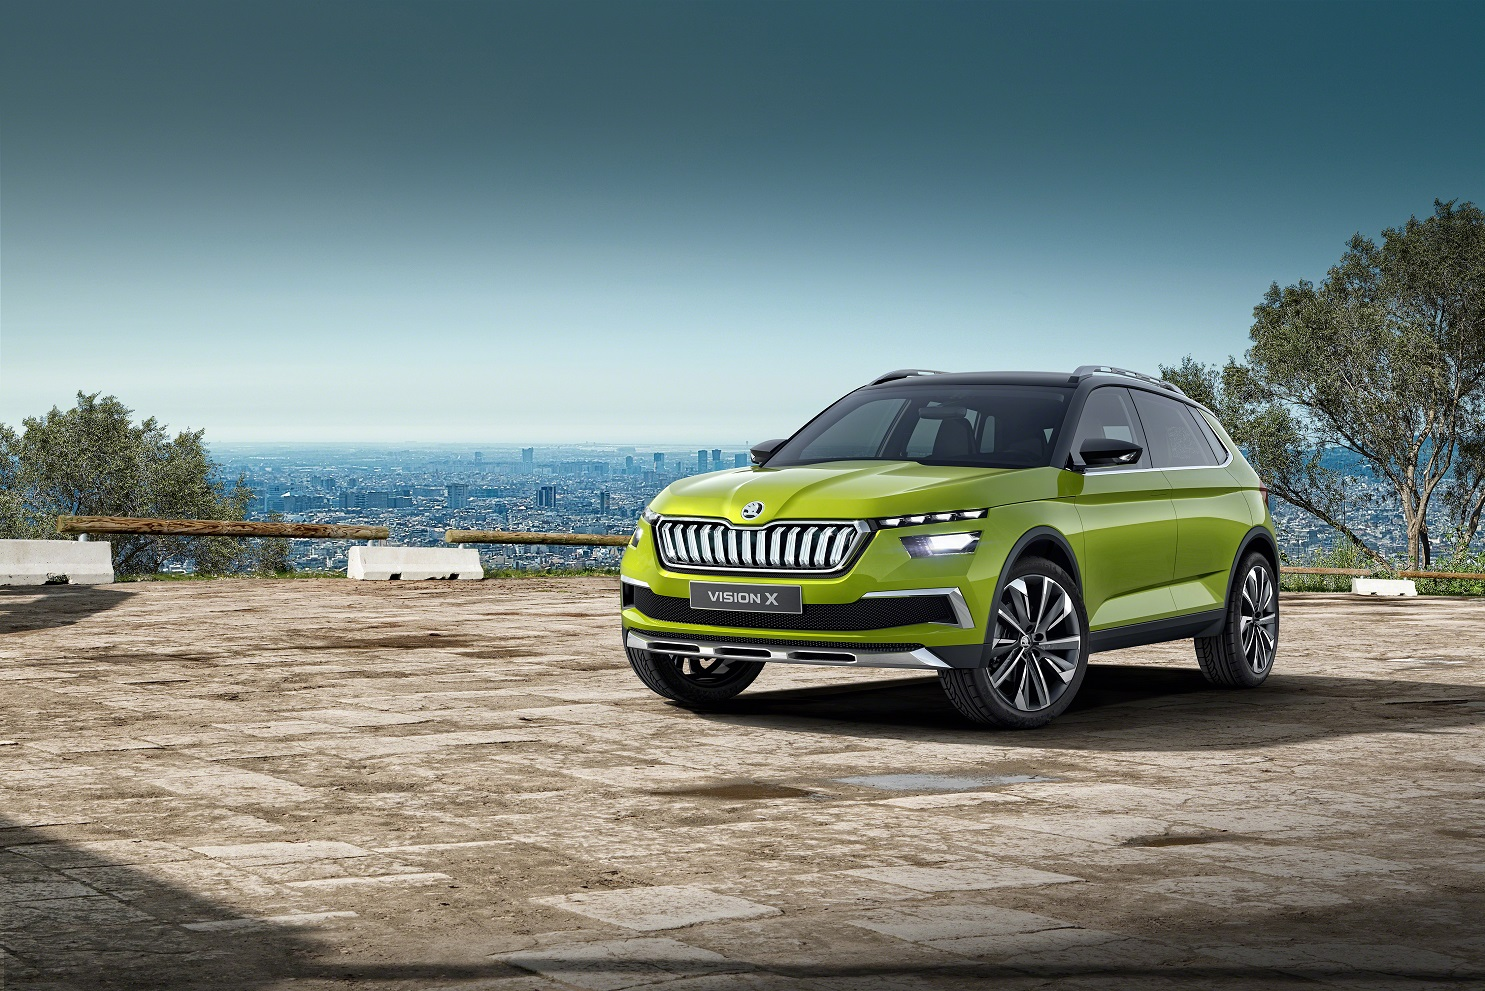 Rumour: Skoda to invest Rs. 8014 crore for 6 new models